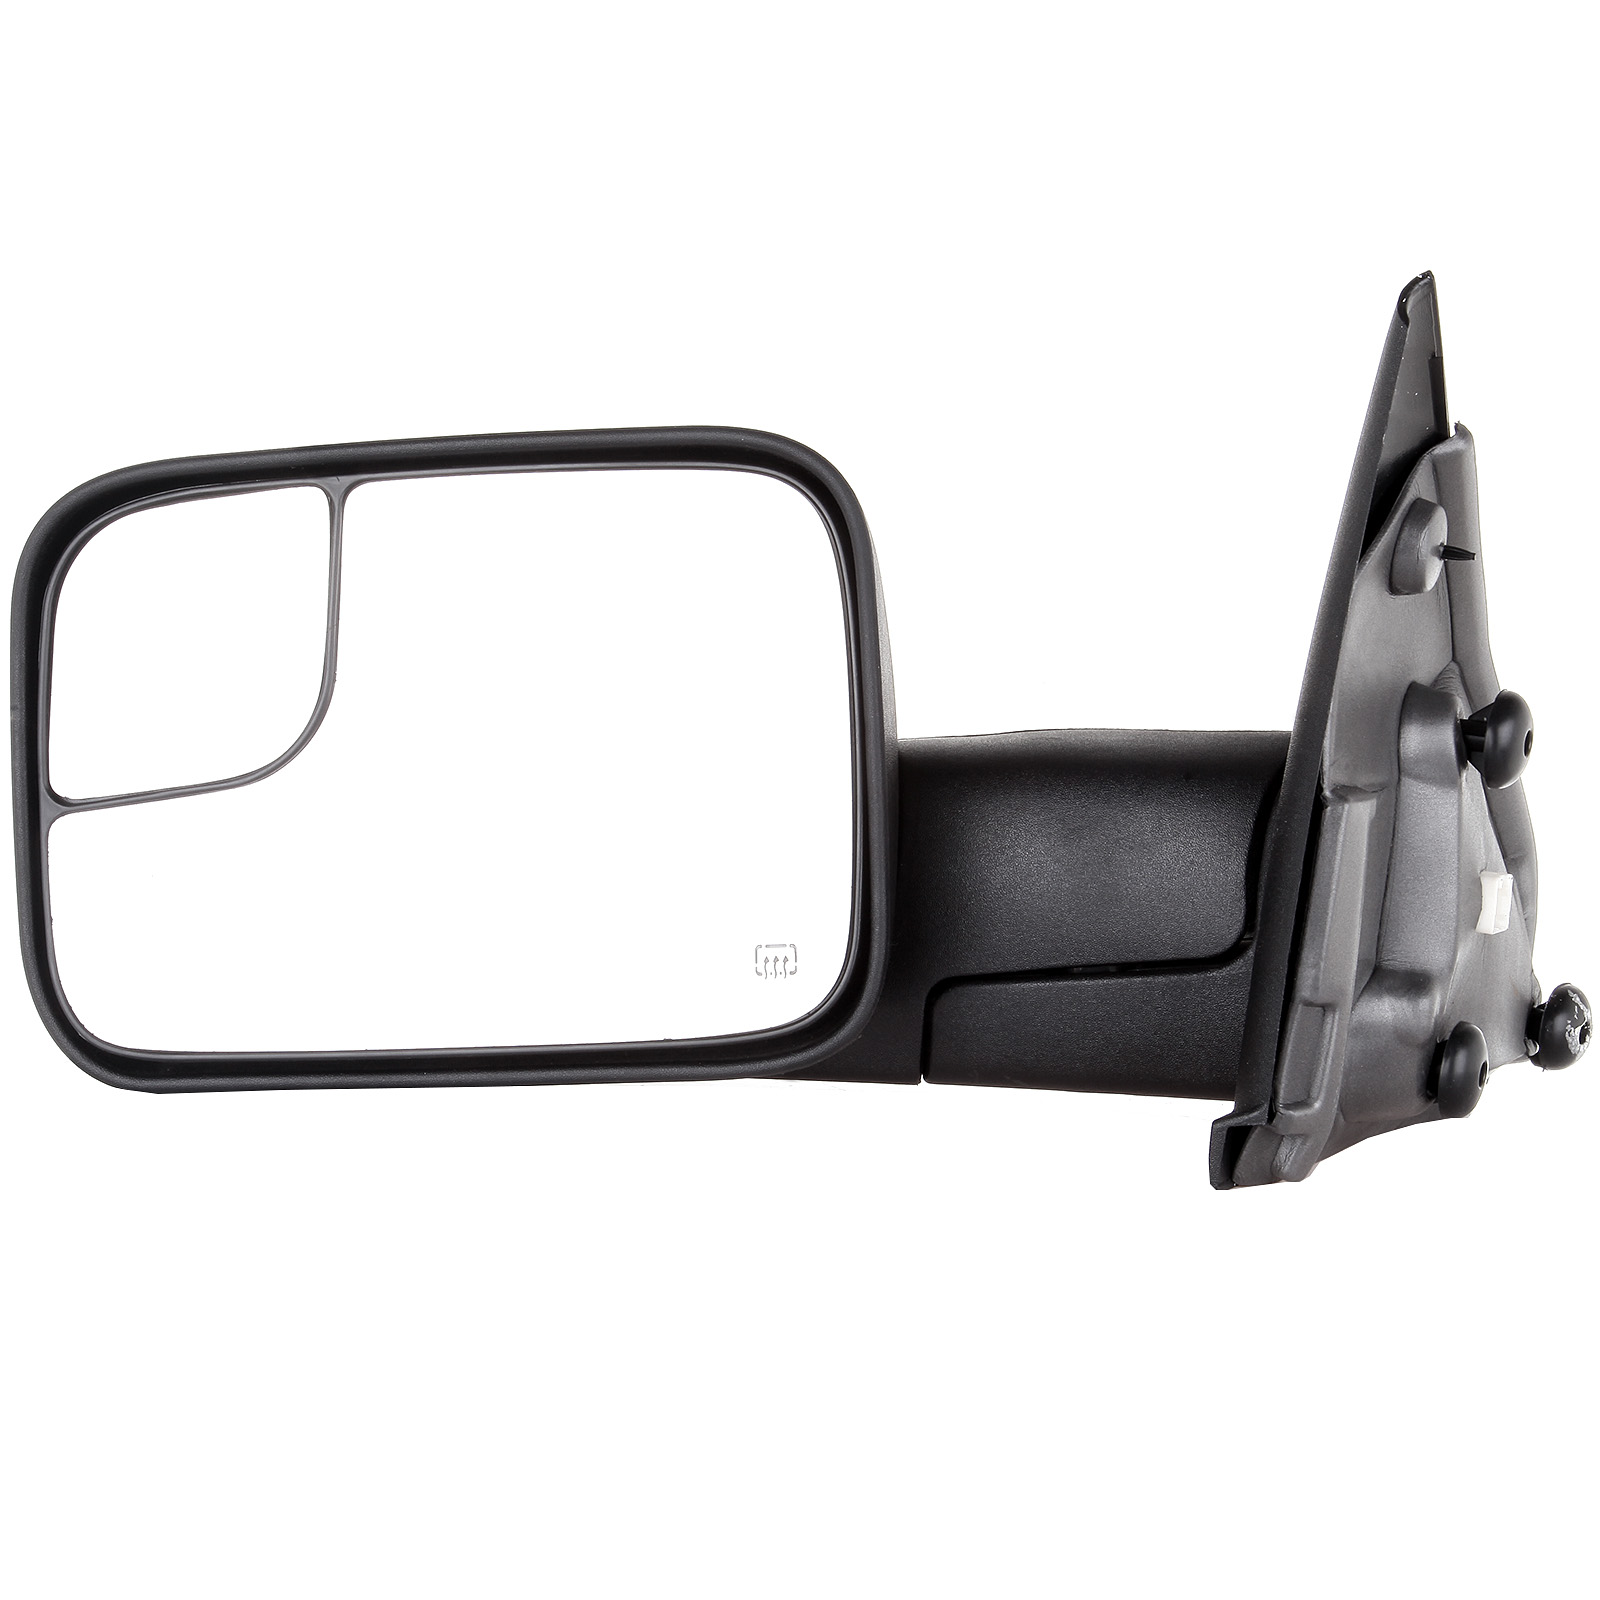 Eccpp Towing Mirrors For 2002 2008 Dodge Ram 1500 2003 2009 2500 3500 Power Heated Side View Mirror Pair Manual Flip Up In Underwear From Mother Kids